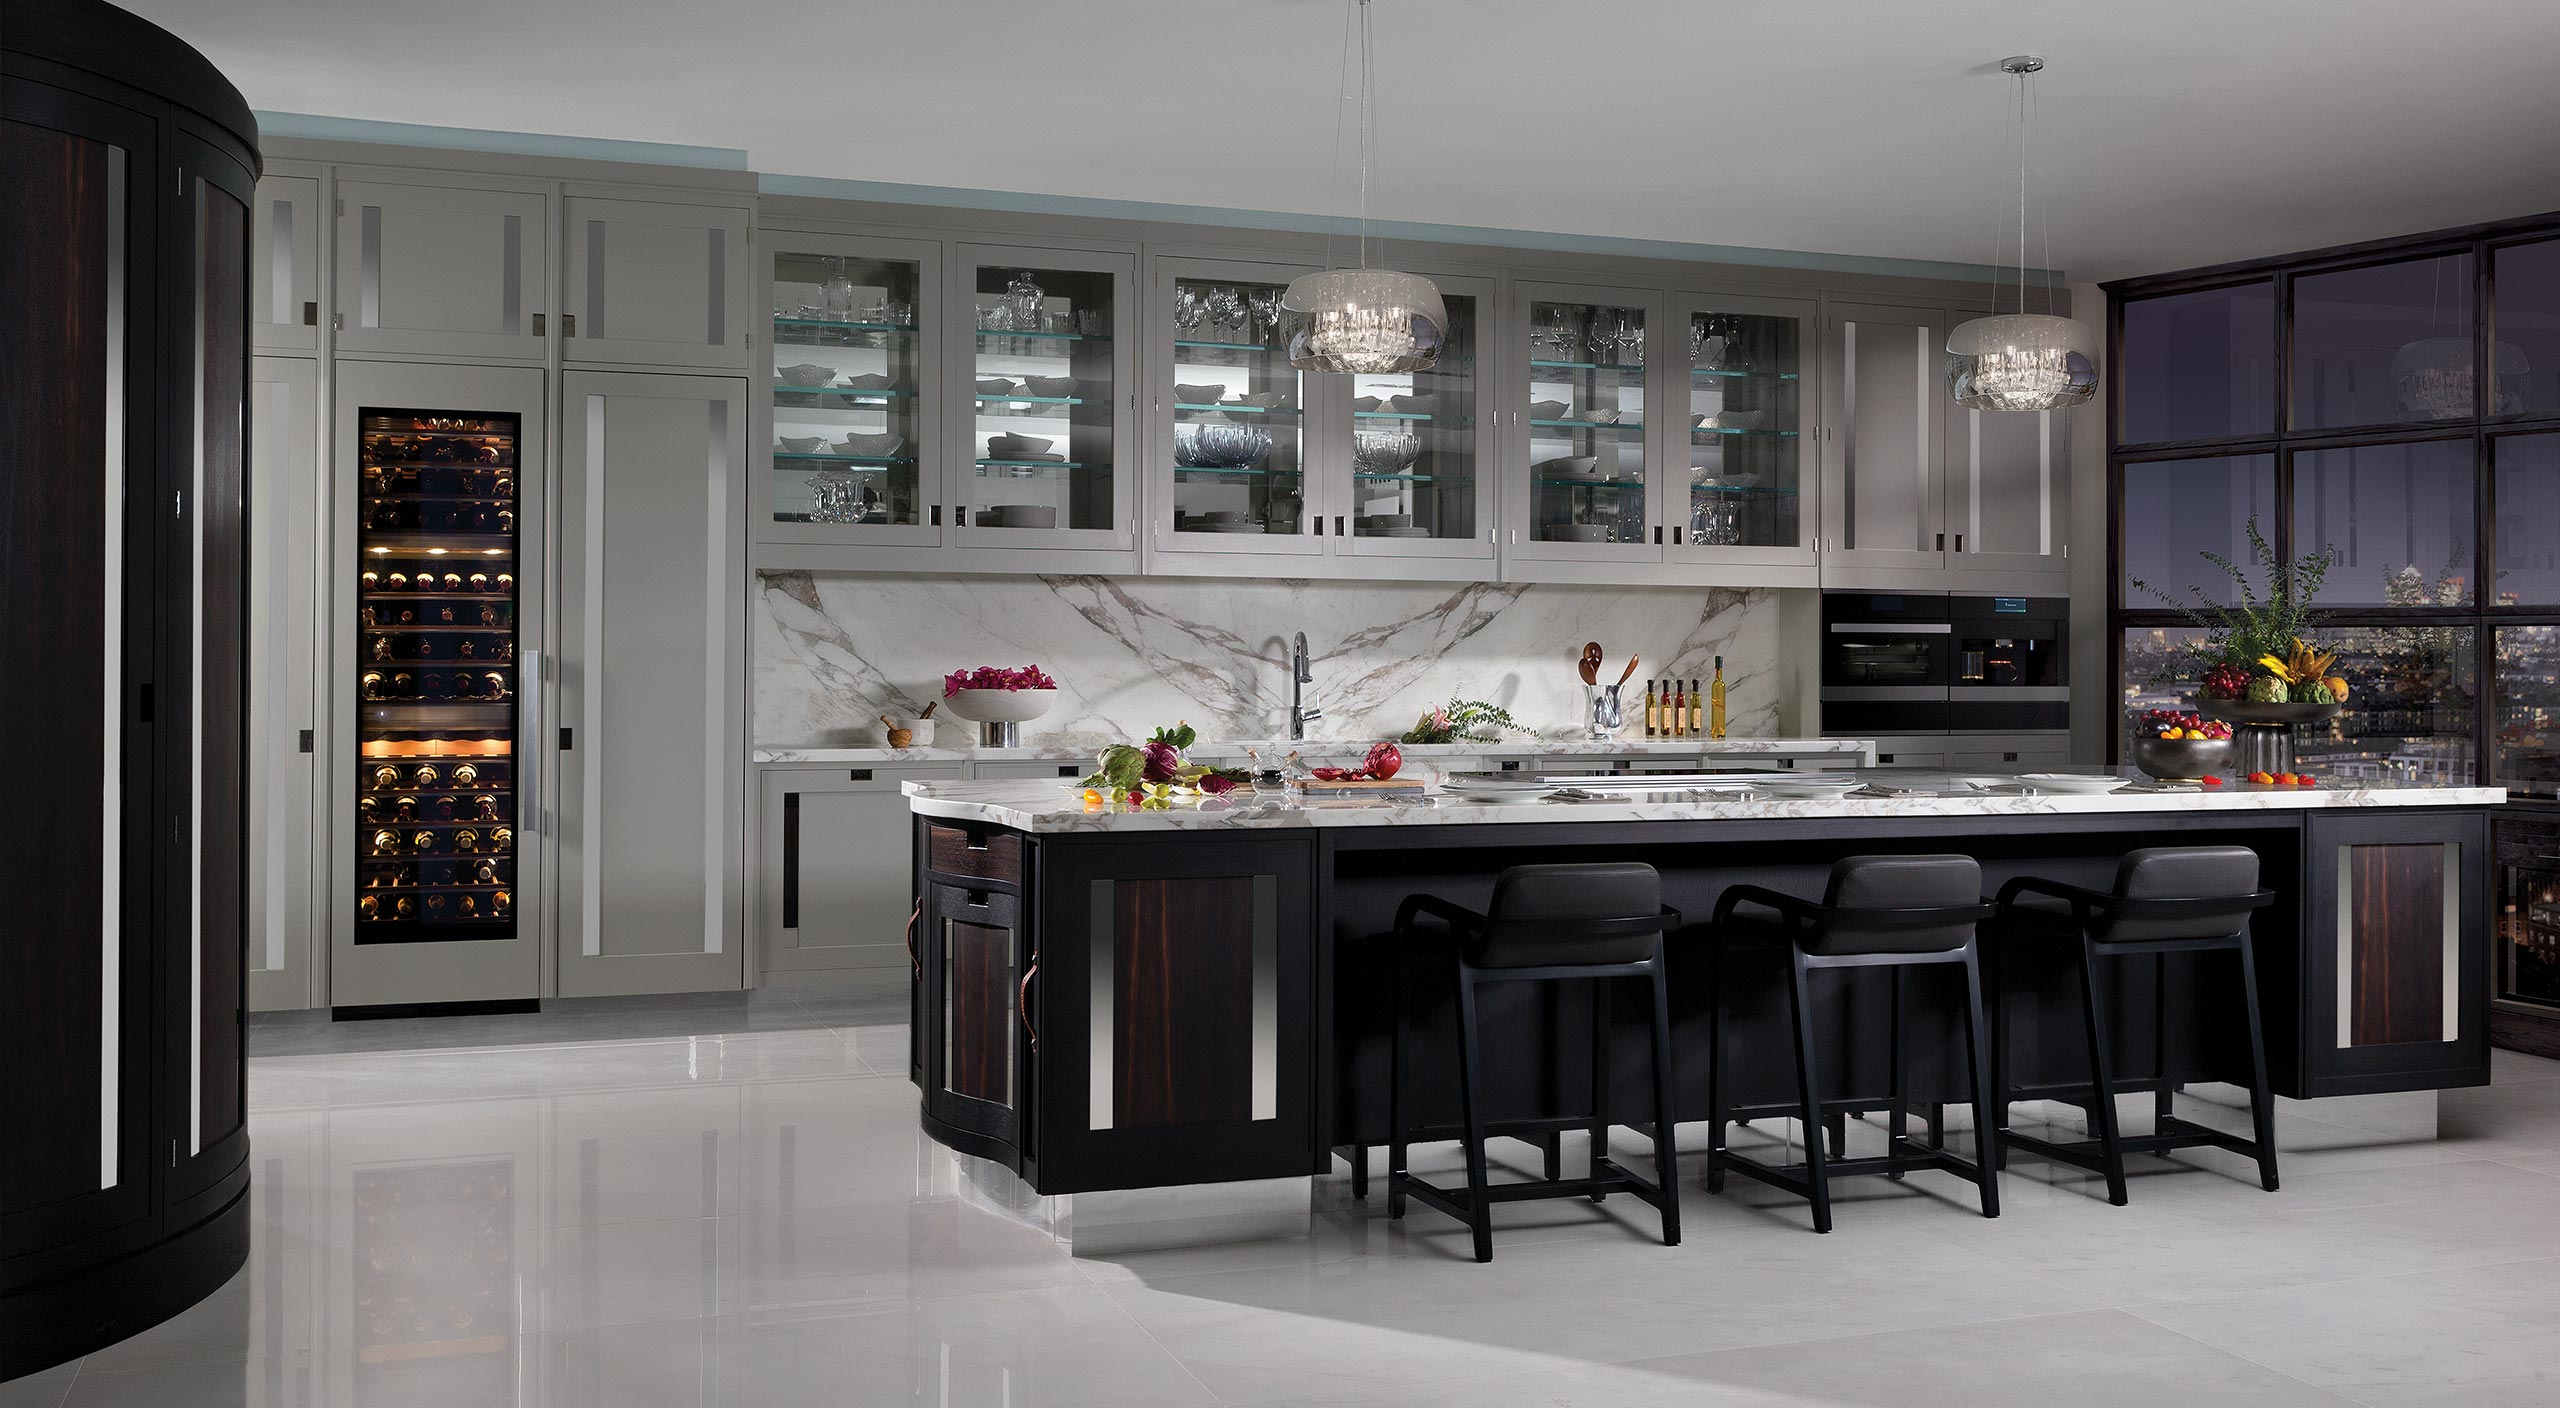 Smallbone Macassar Bespoke Kitchen Design